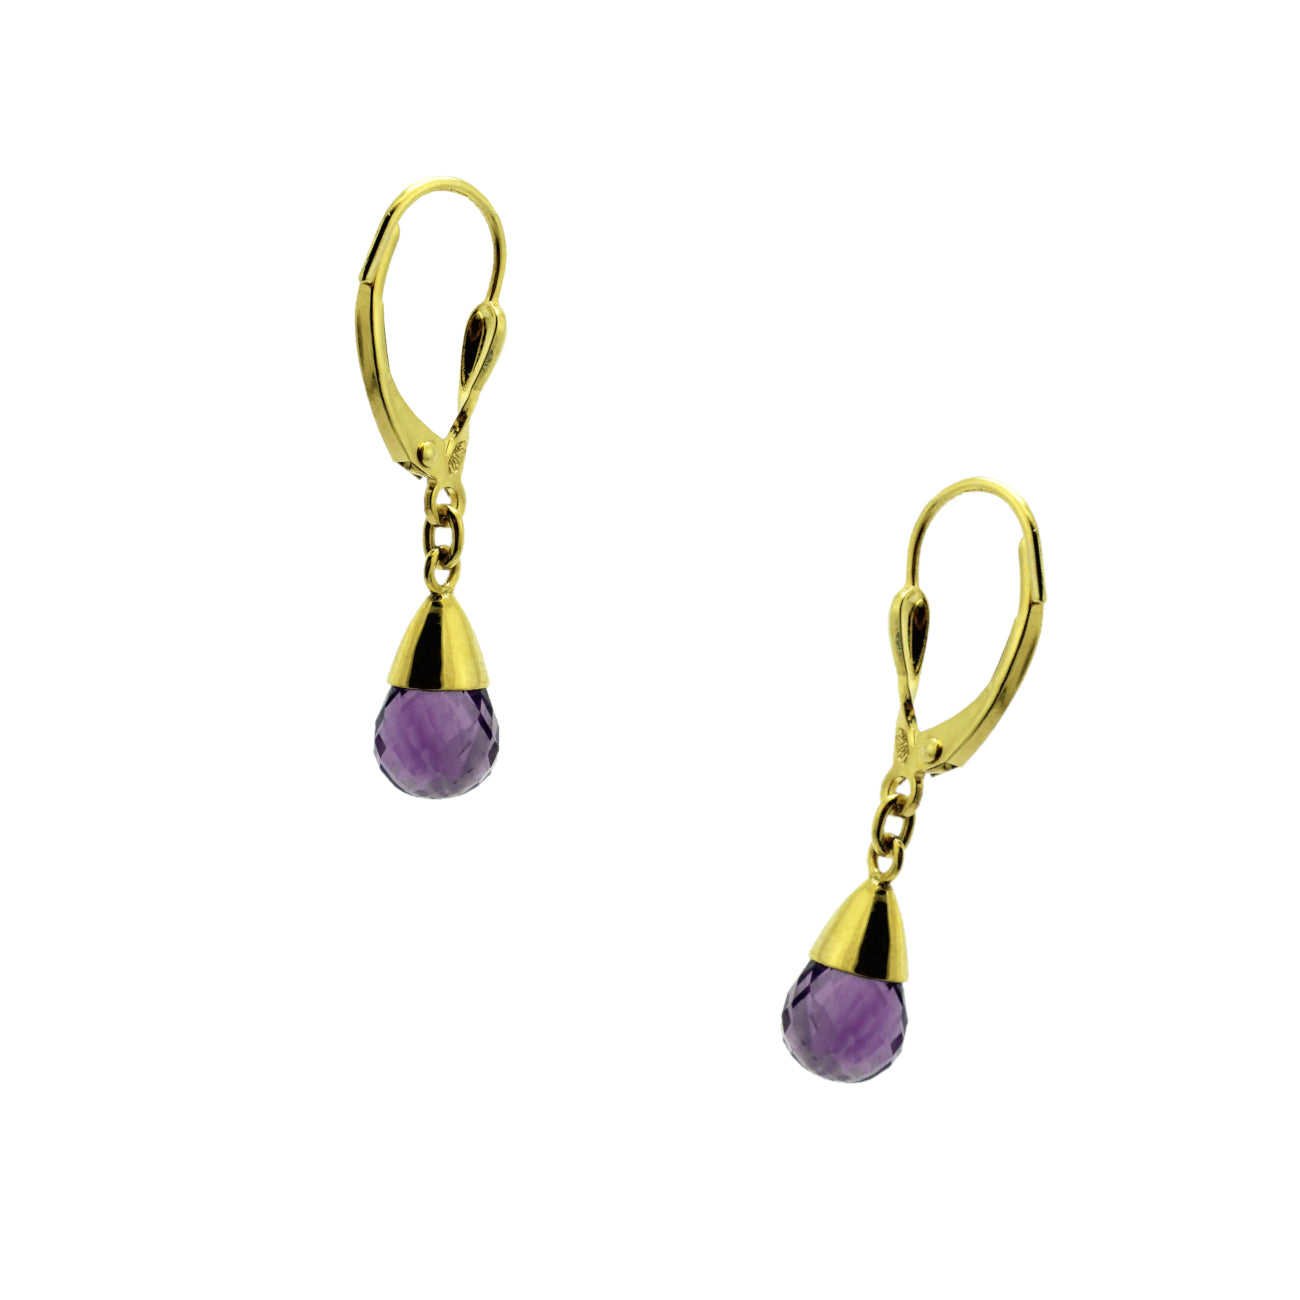 Briollet Amethyst Earrings